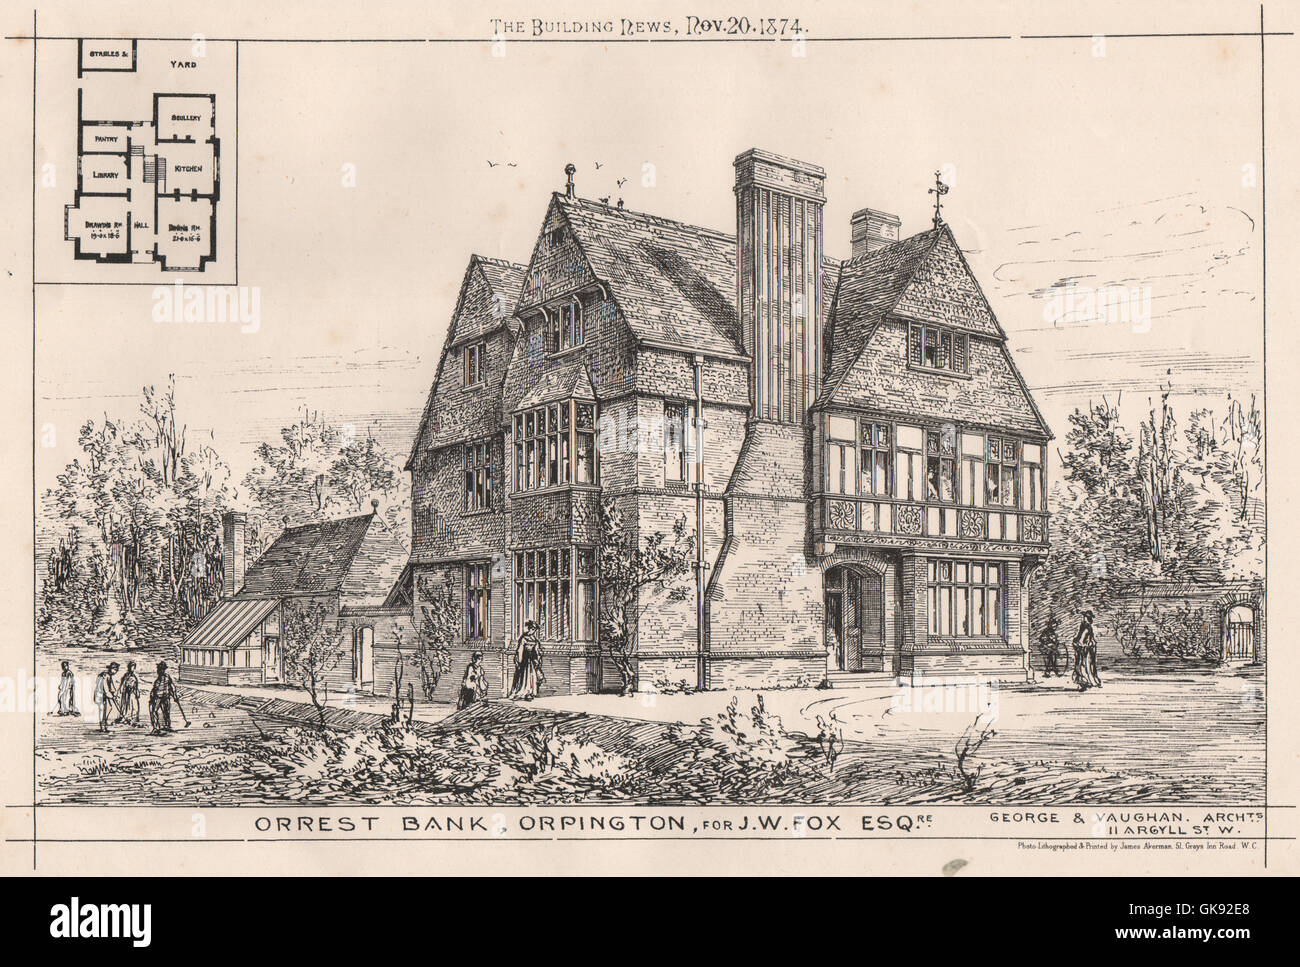 Orrest Bank, Orpington, for J.W. Fox; George & Vaughan Architects, print 1874 - Stock Image